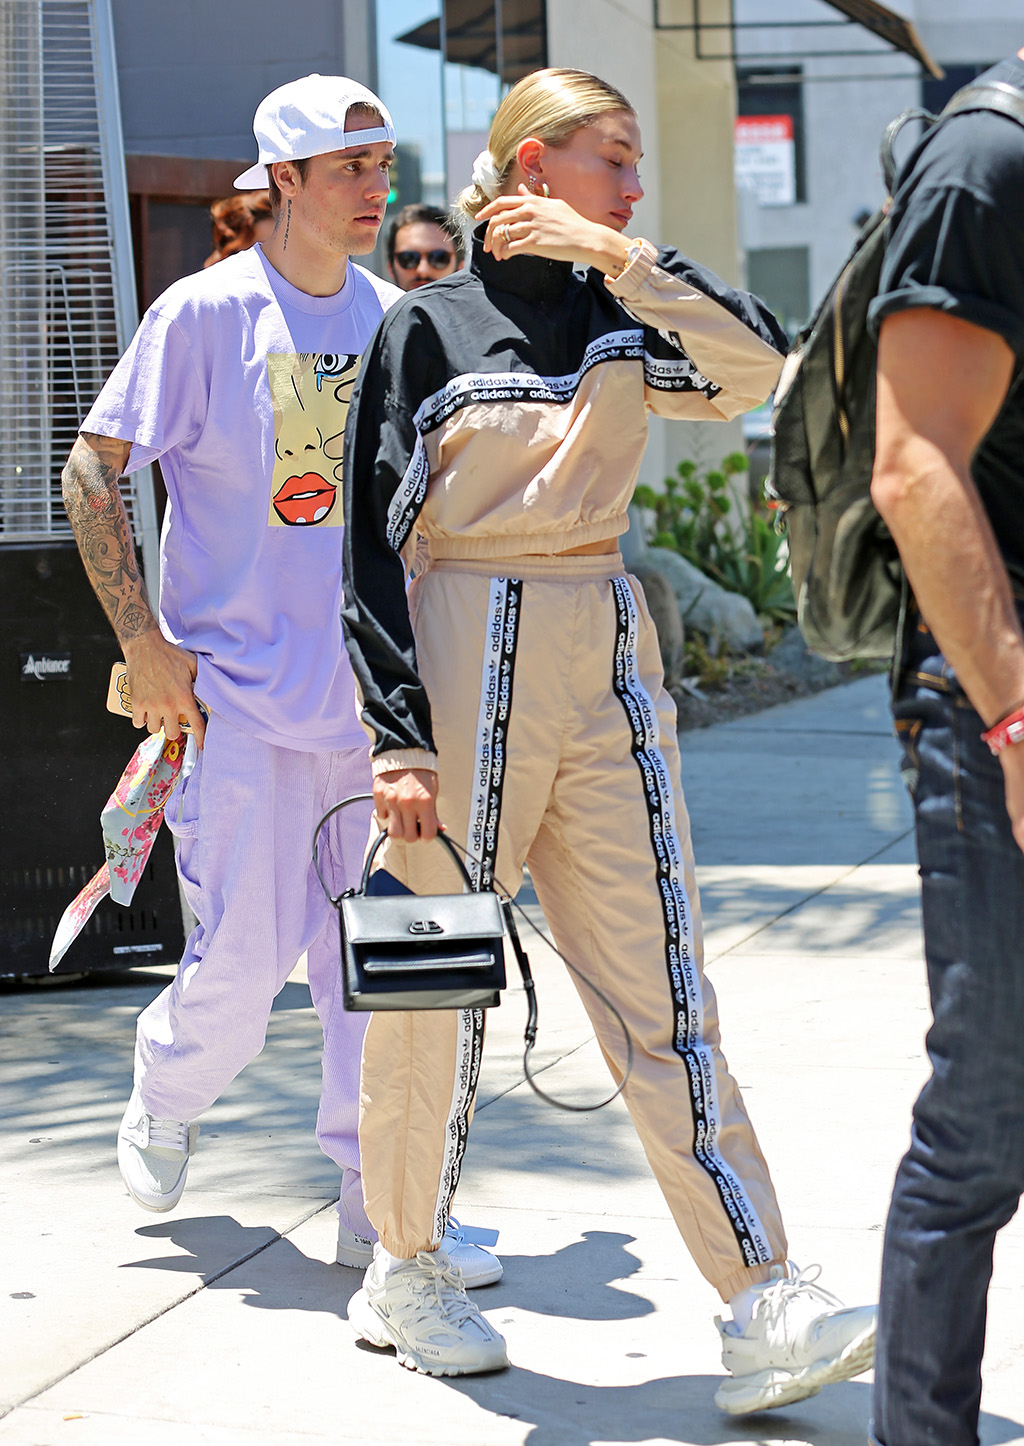 Hailey Baldwin, Adidas tracksuit, Balenciaga track sneakers, Balenciaga purse, Jennifer fisher earrings, scrunchie, celebrity style, Justin Bieber and Hailey Baldwin step out in eye-catching outfits while accompanied by members of their church in Los Angeles, CA.Pictured: JUSTIN BIEBER AND HAILEY BALDWINRef: SPL5104954 200719 NON-EXCLUSIVEPicture by: SplashNews.comSplash News and PicturesLos Angeles: 310-821-2666New York: 212-619-2666London: 0207 644 7656Milan: 02 4399 8577photodesk@splashnews.comWorld Rights, No Brazil Rights